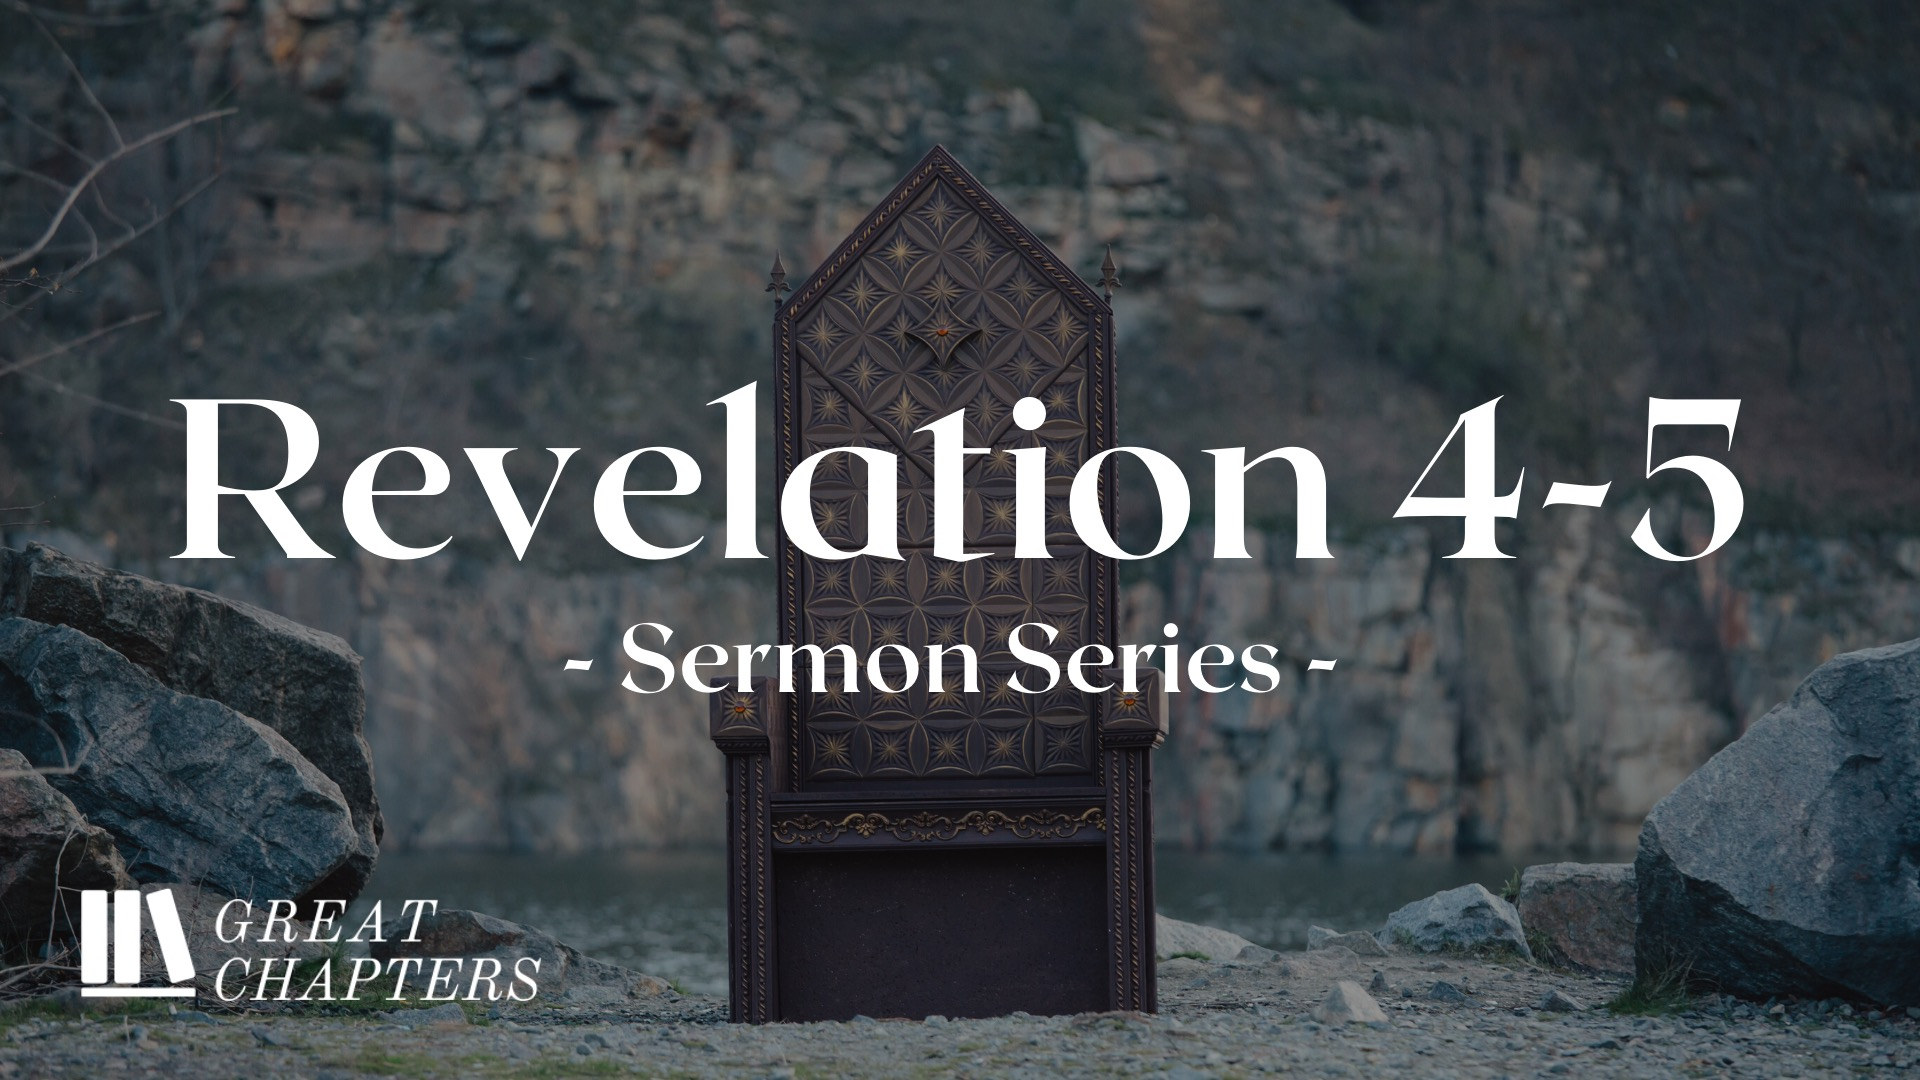 Great Chapters: Revelation 4-5